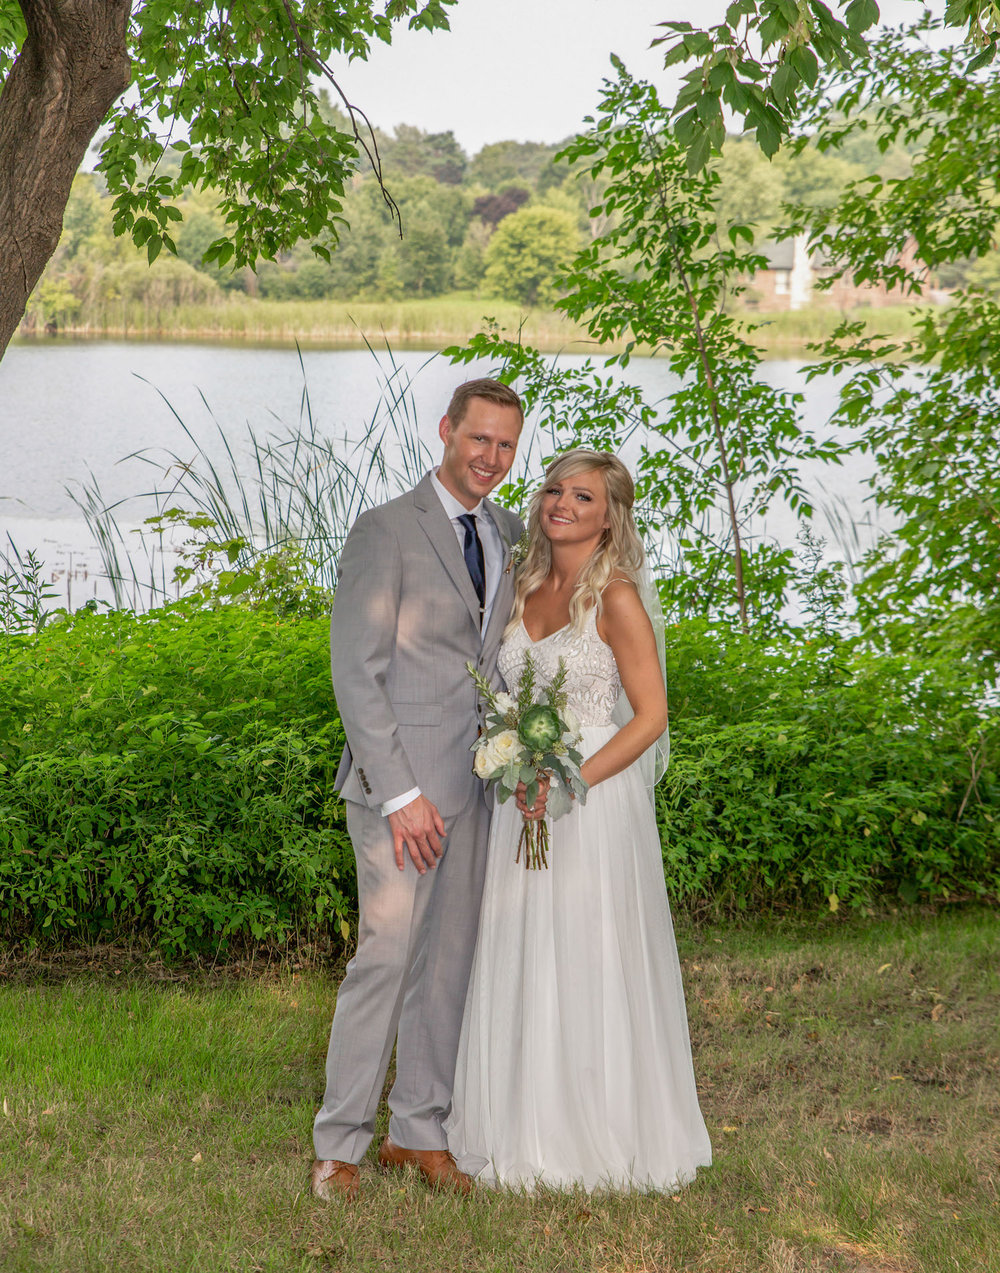 Cindyrellas Garden outdoor wedding ceremony by a private lake with wooded backdrops, lake in the backdrop